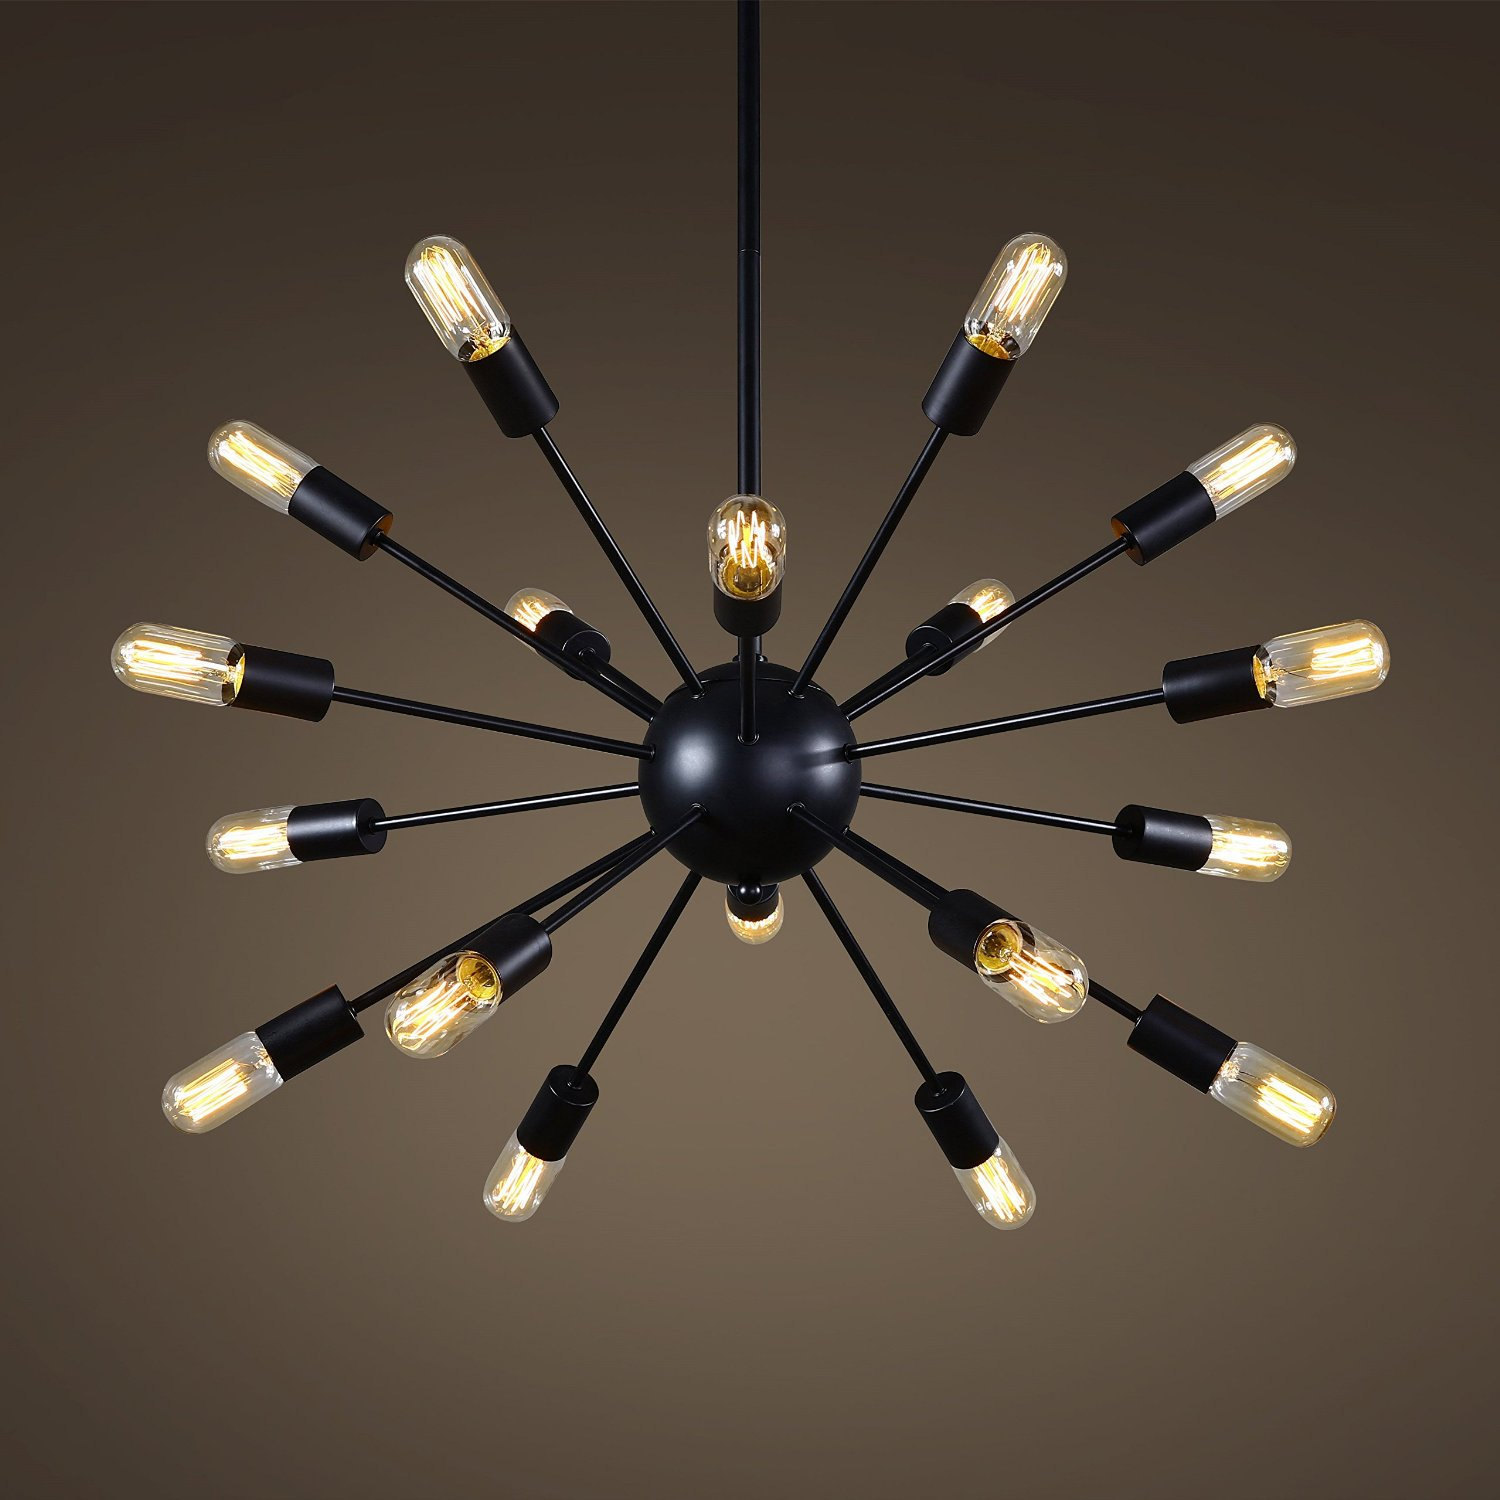 Il Fullxfull 1025073477 Nhz7 Vintage Metal Large Sputnik Chandelier With 18 Lights Painted